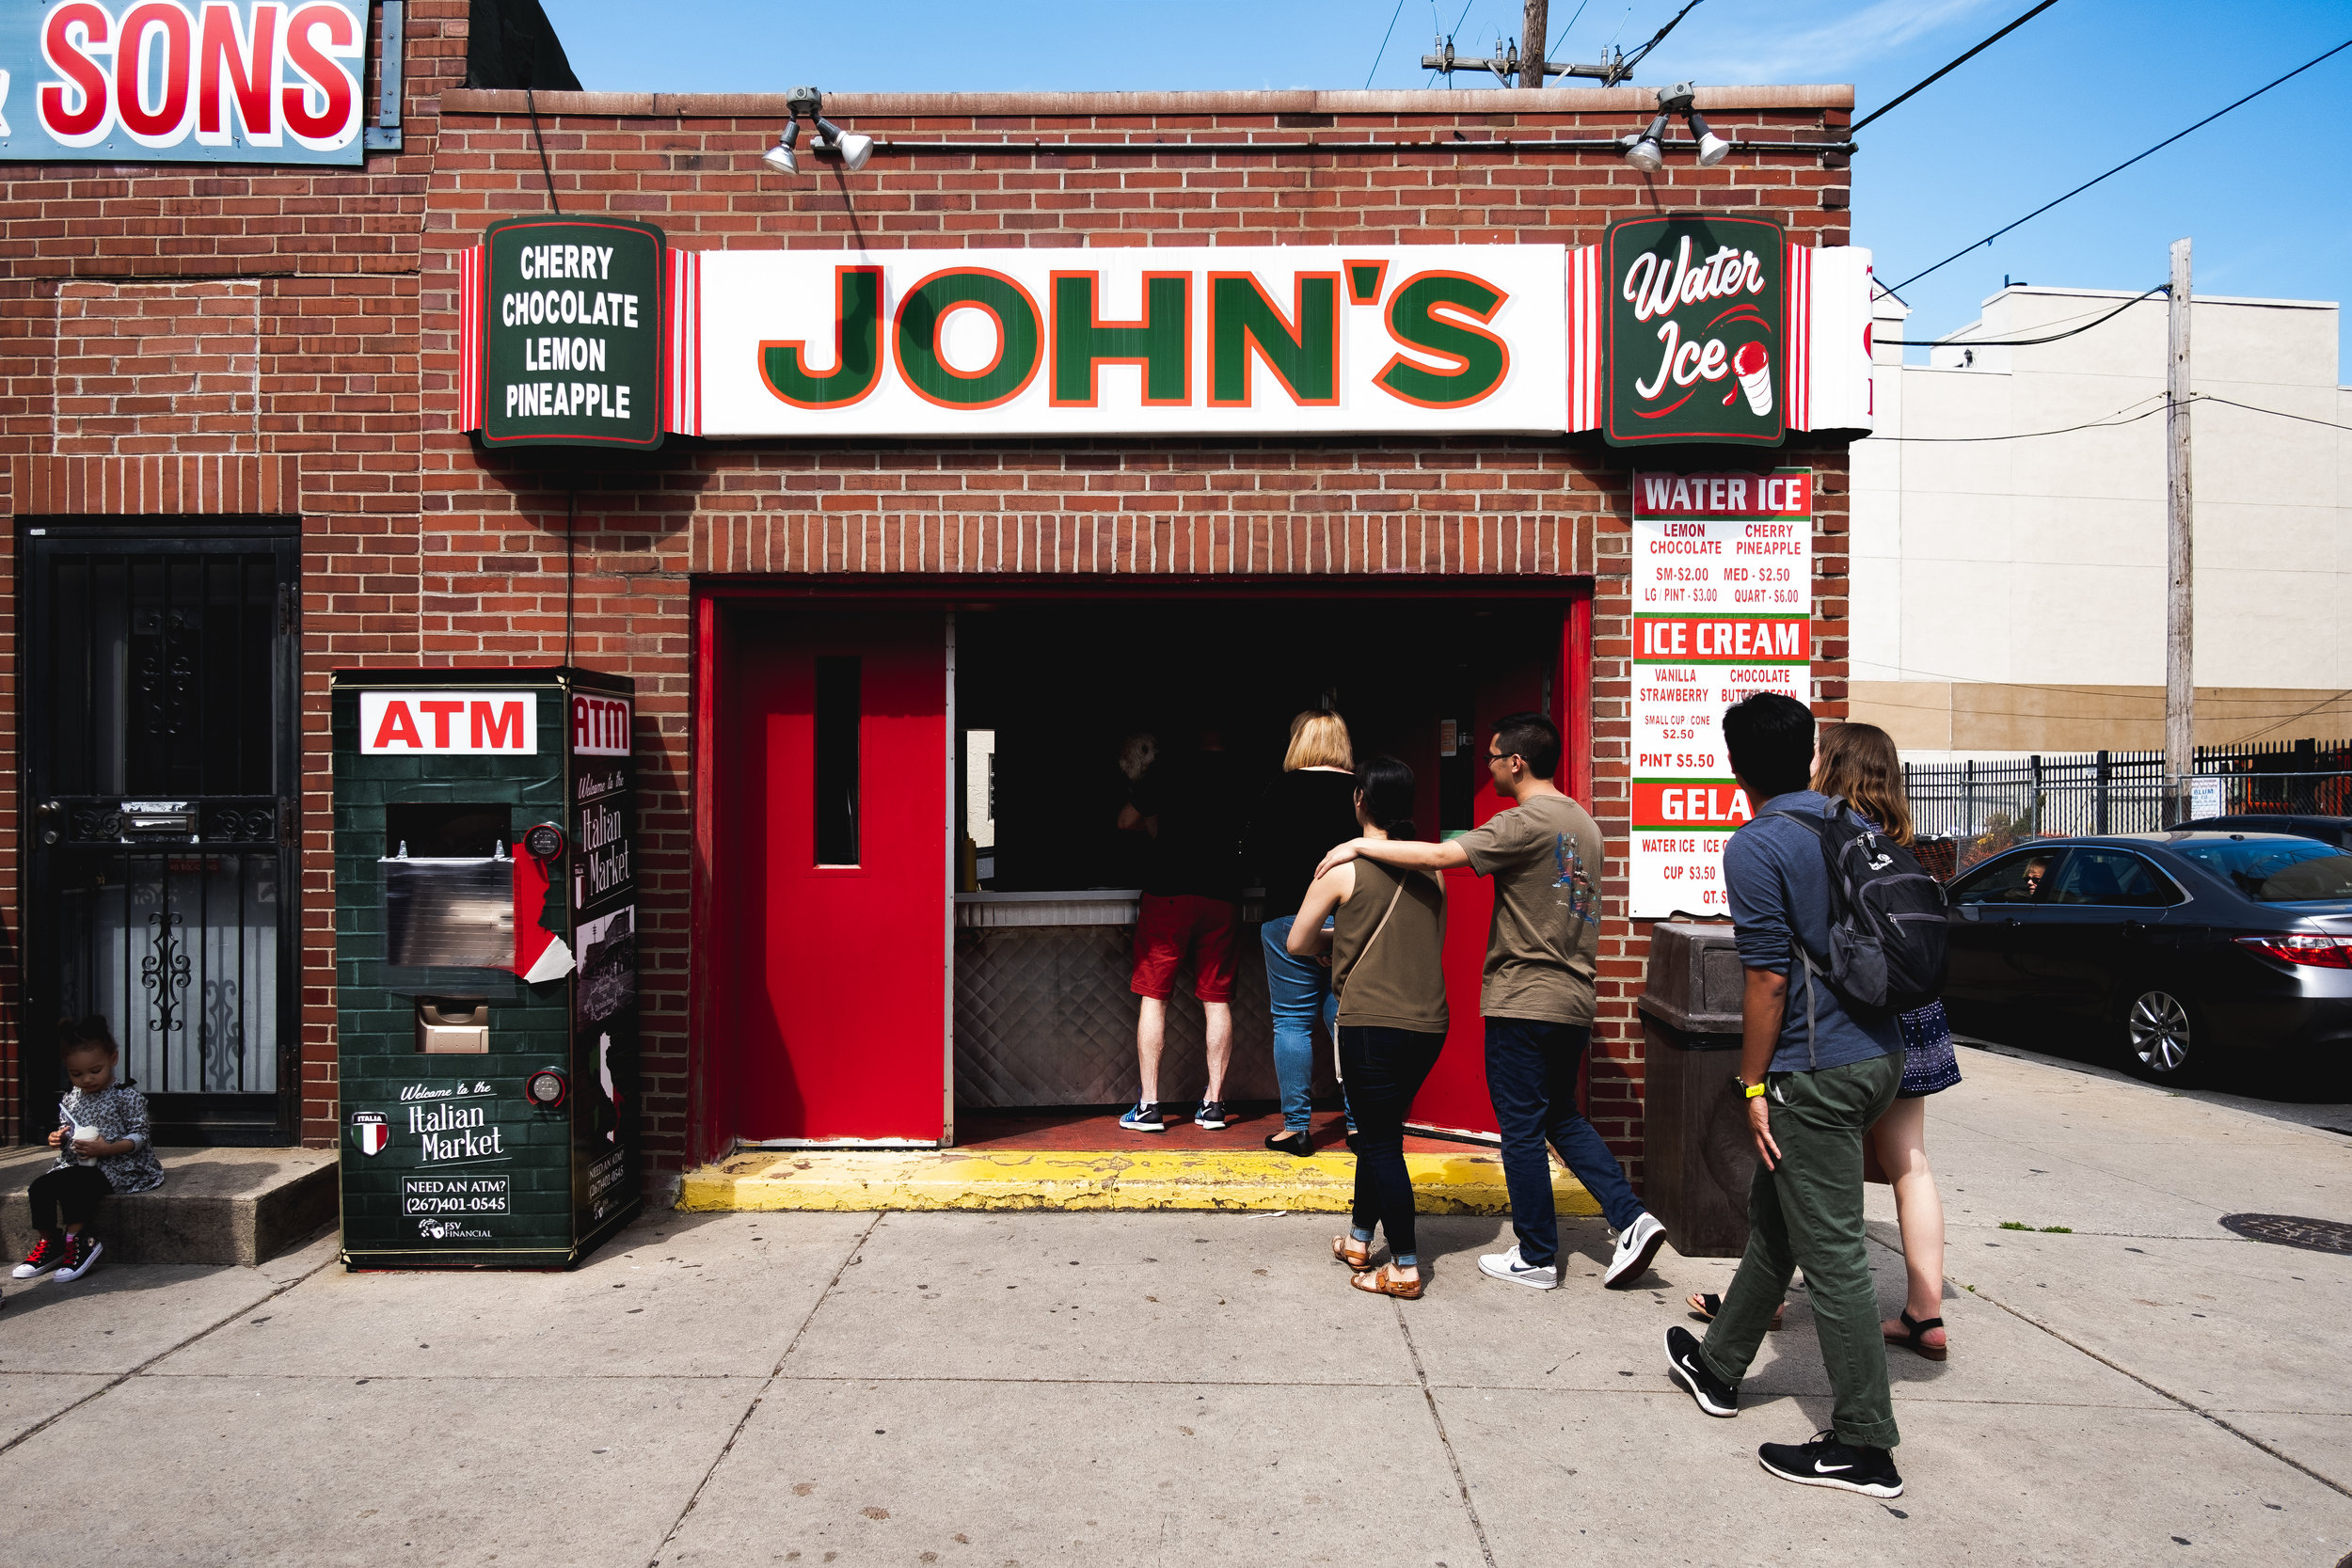 2019_JOHNS WATER ICE_THE PHILLY CHECKLIST-7.jpg